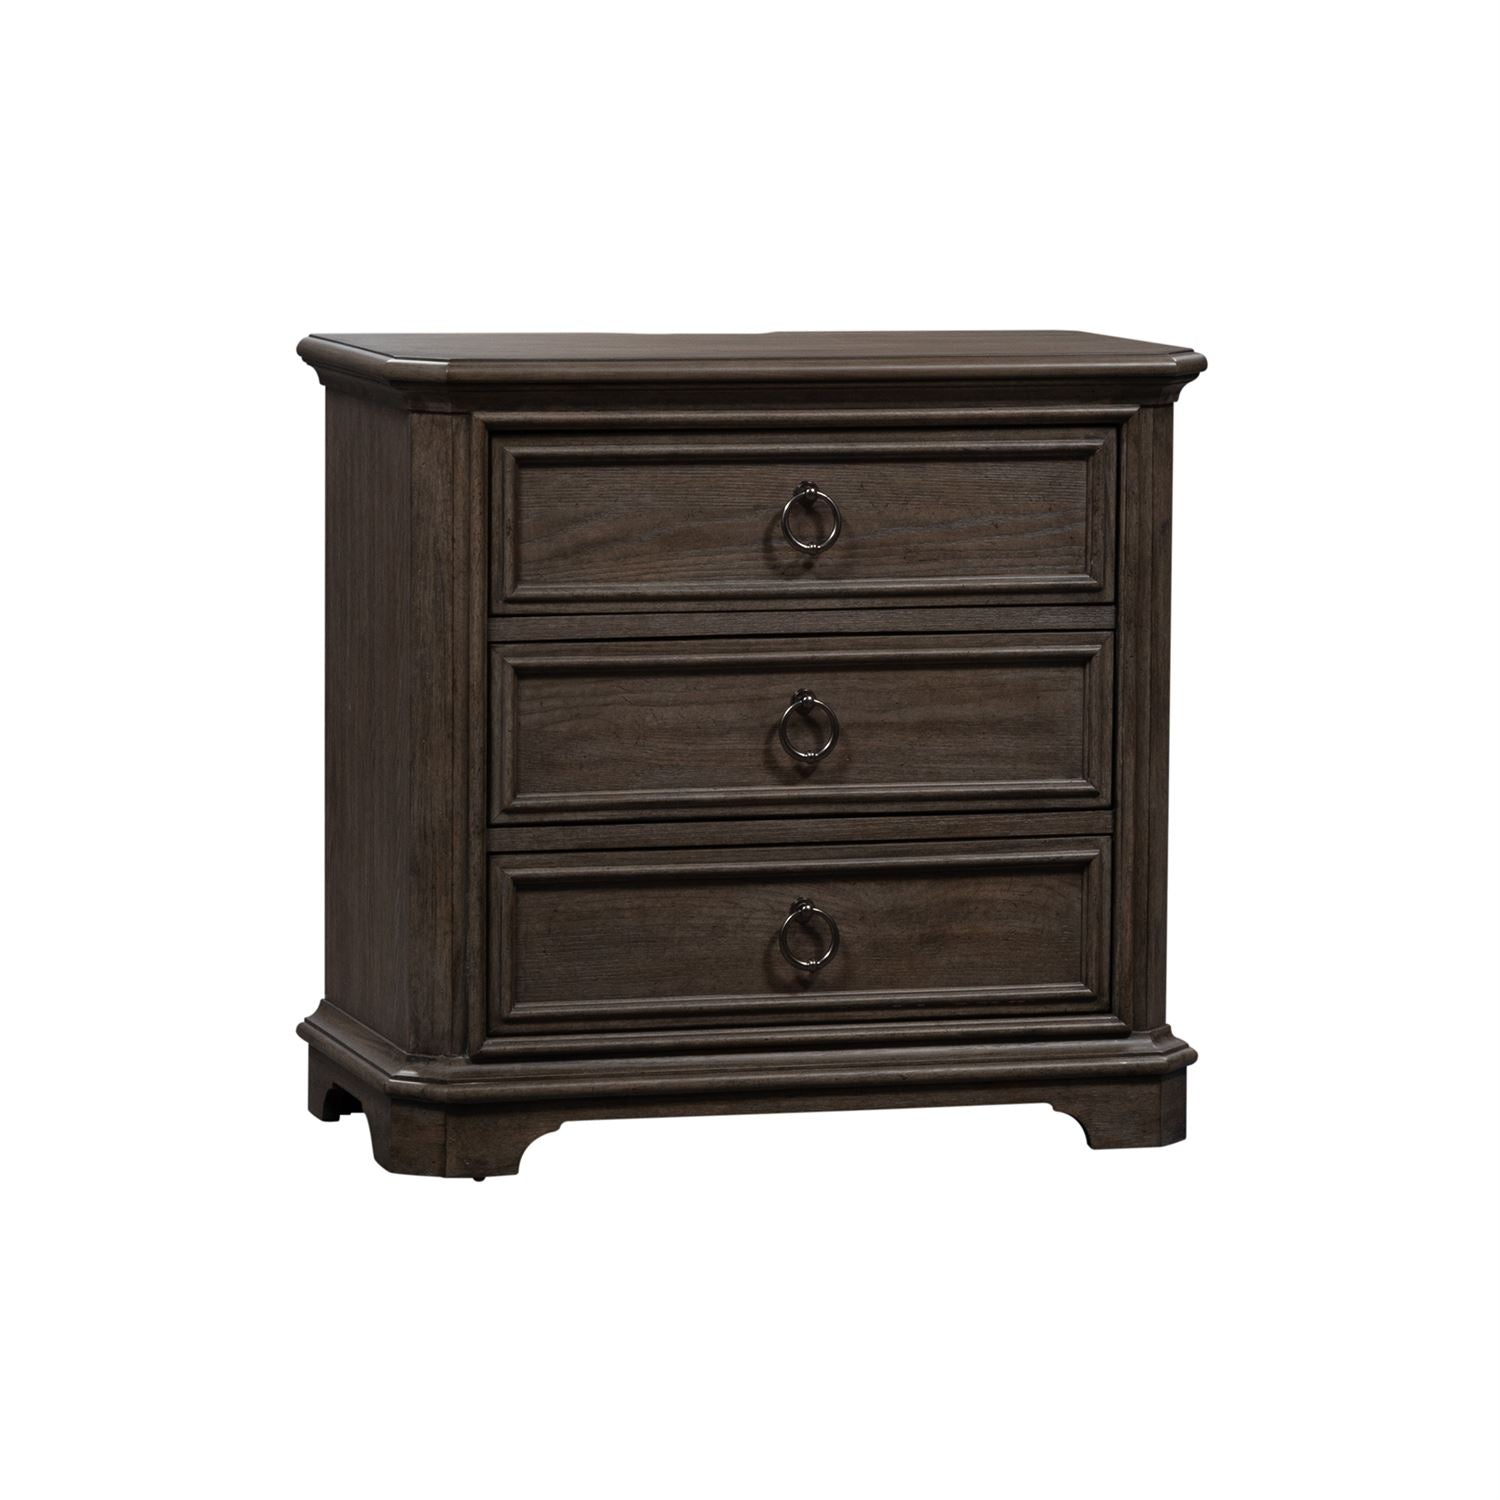 Townsend Place 3 Drawer Bedside Chest/Night Stand